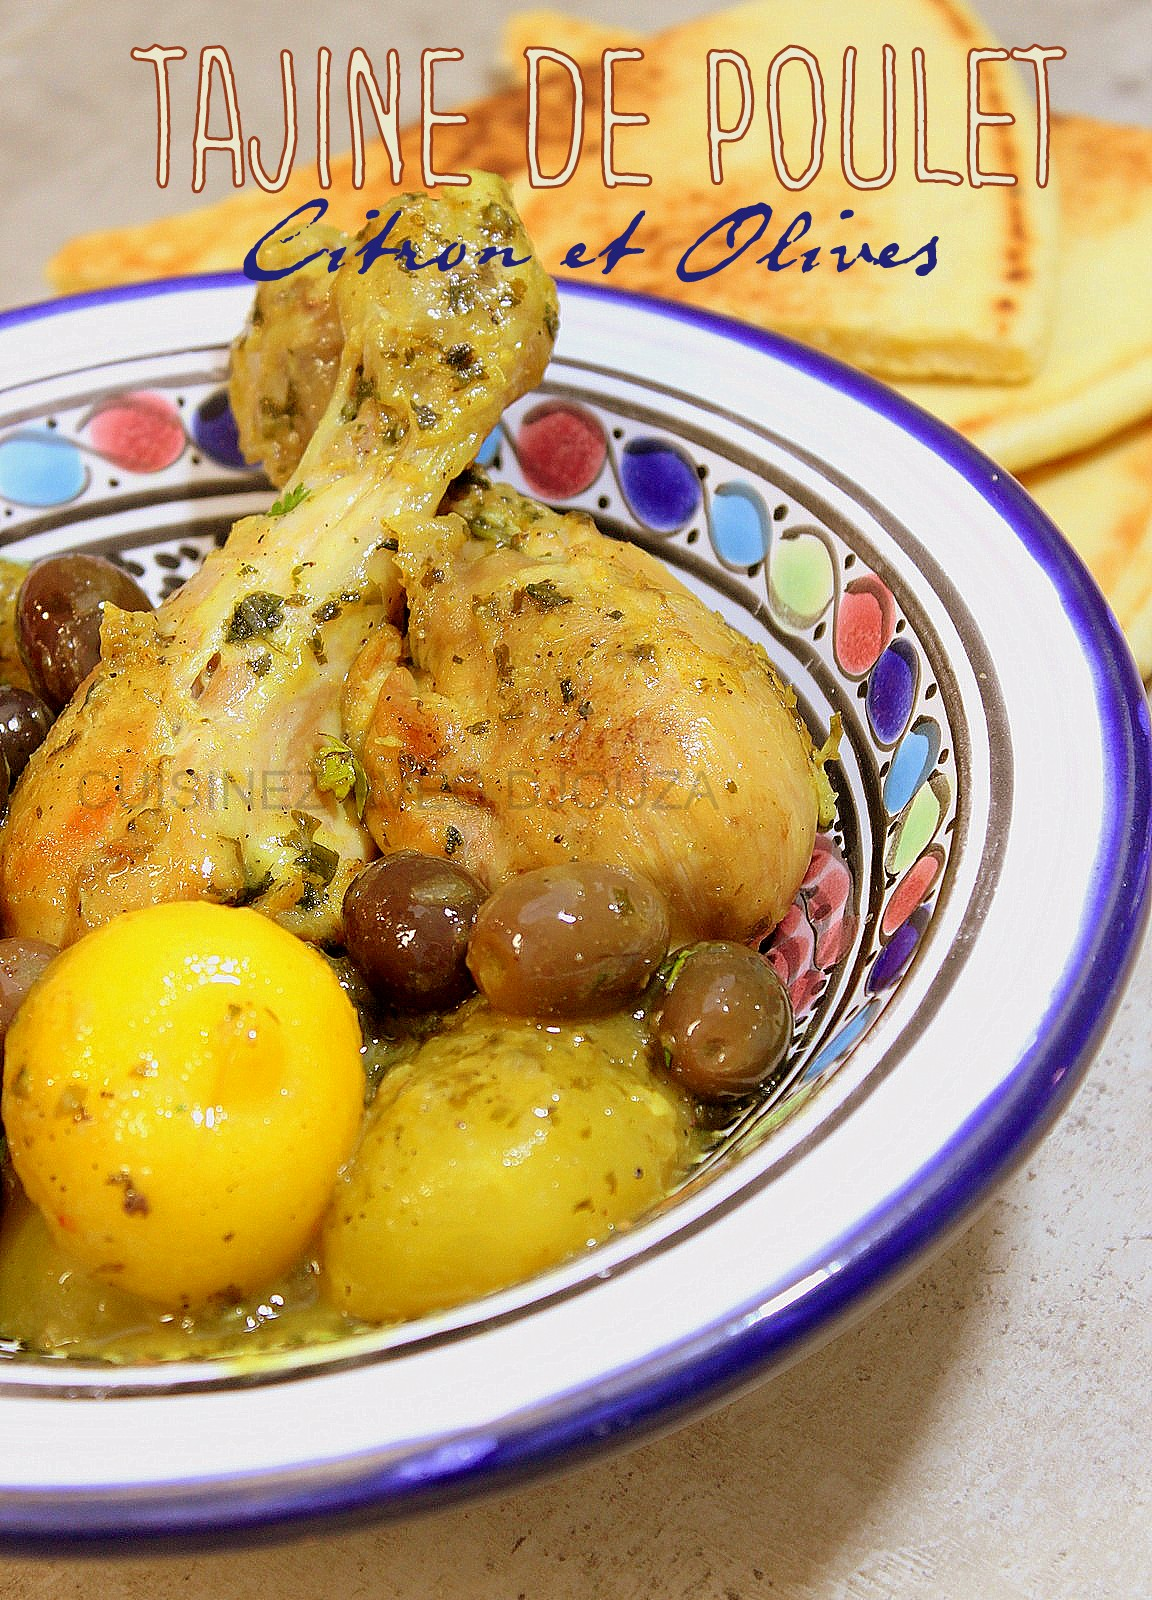 tajine de poulet au citron confit recettes faciles recettes rapides de djouza. Black Bedroom Furniture Sets. Home Design Ideas